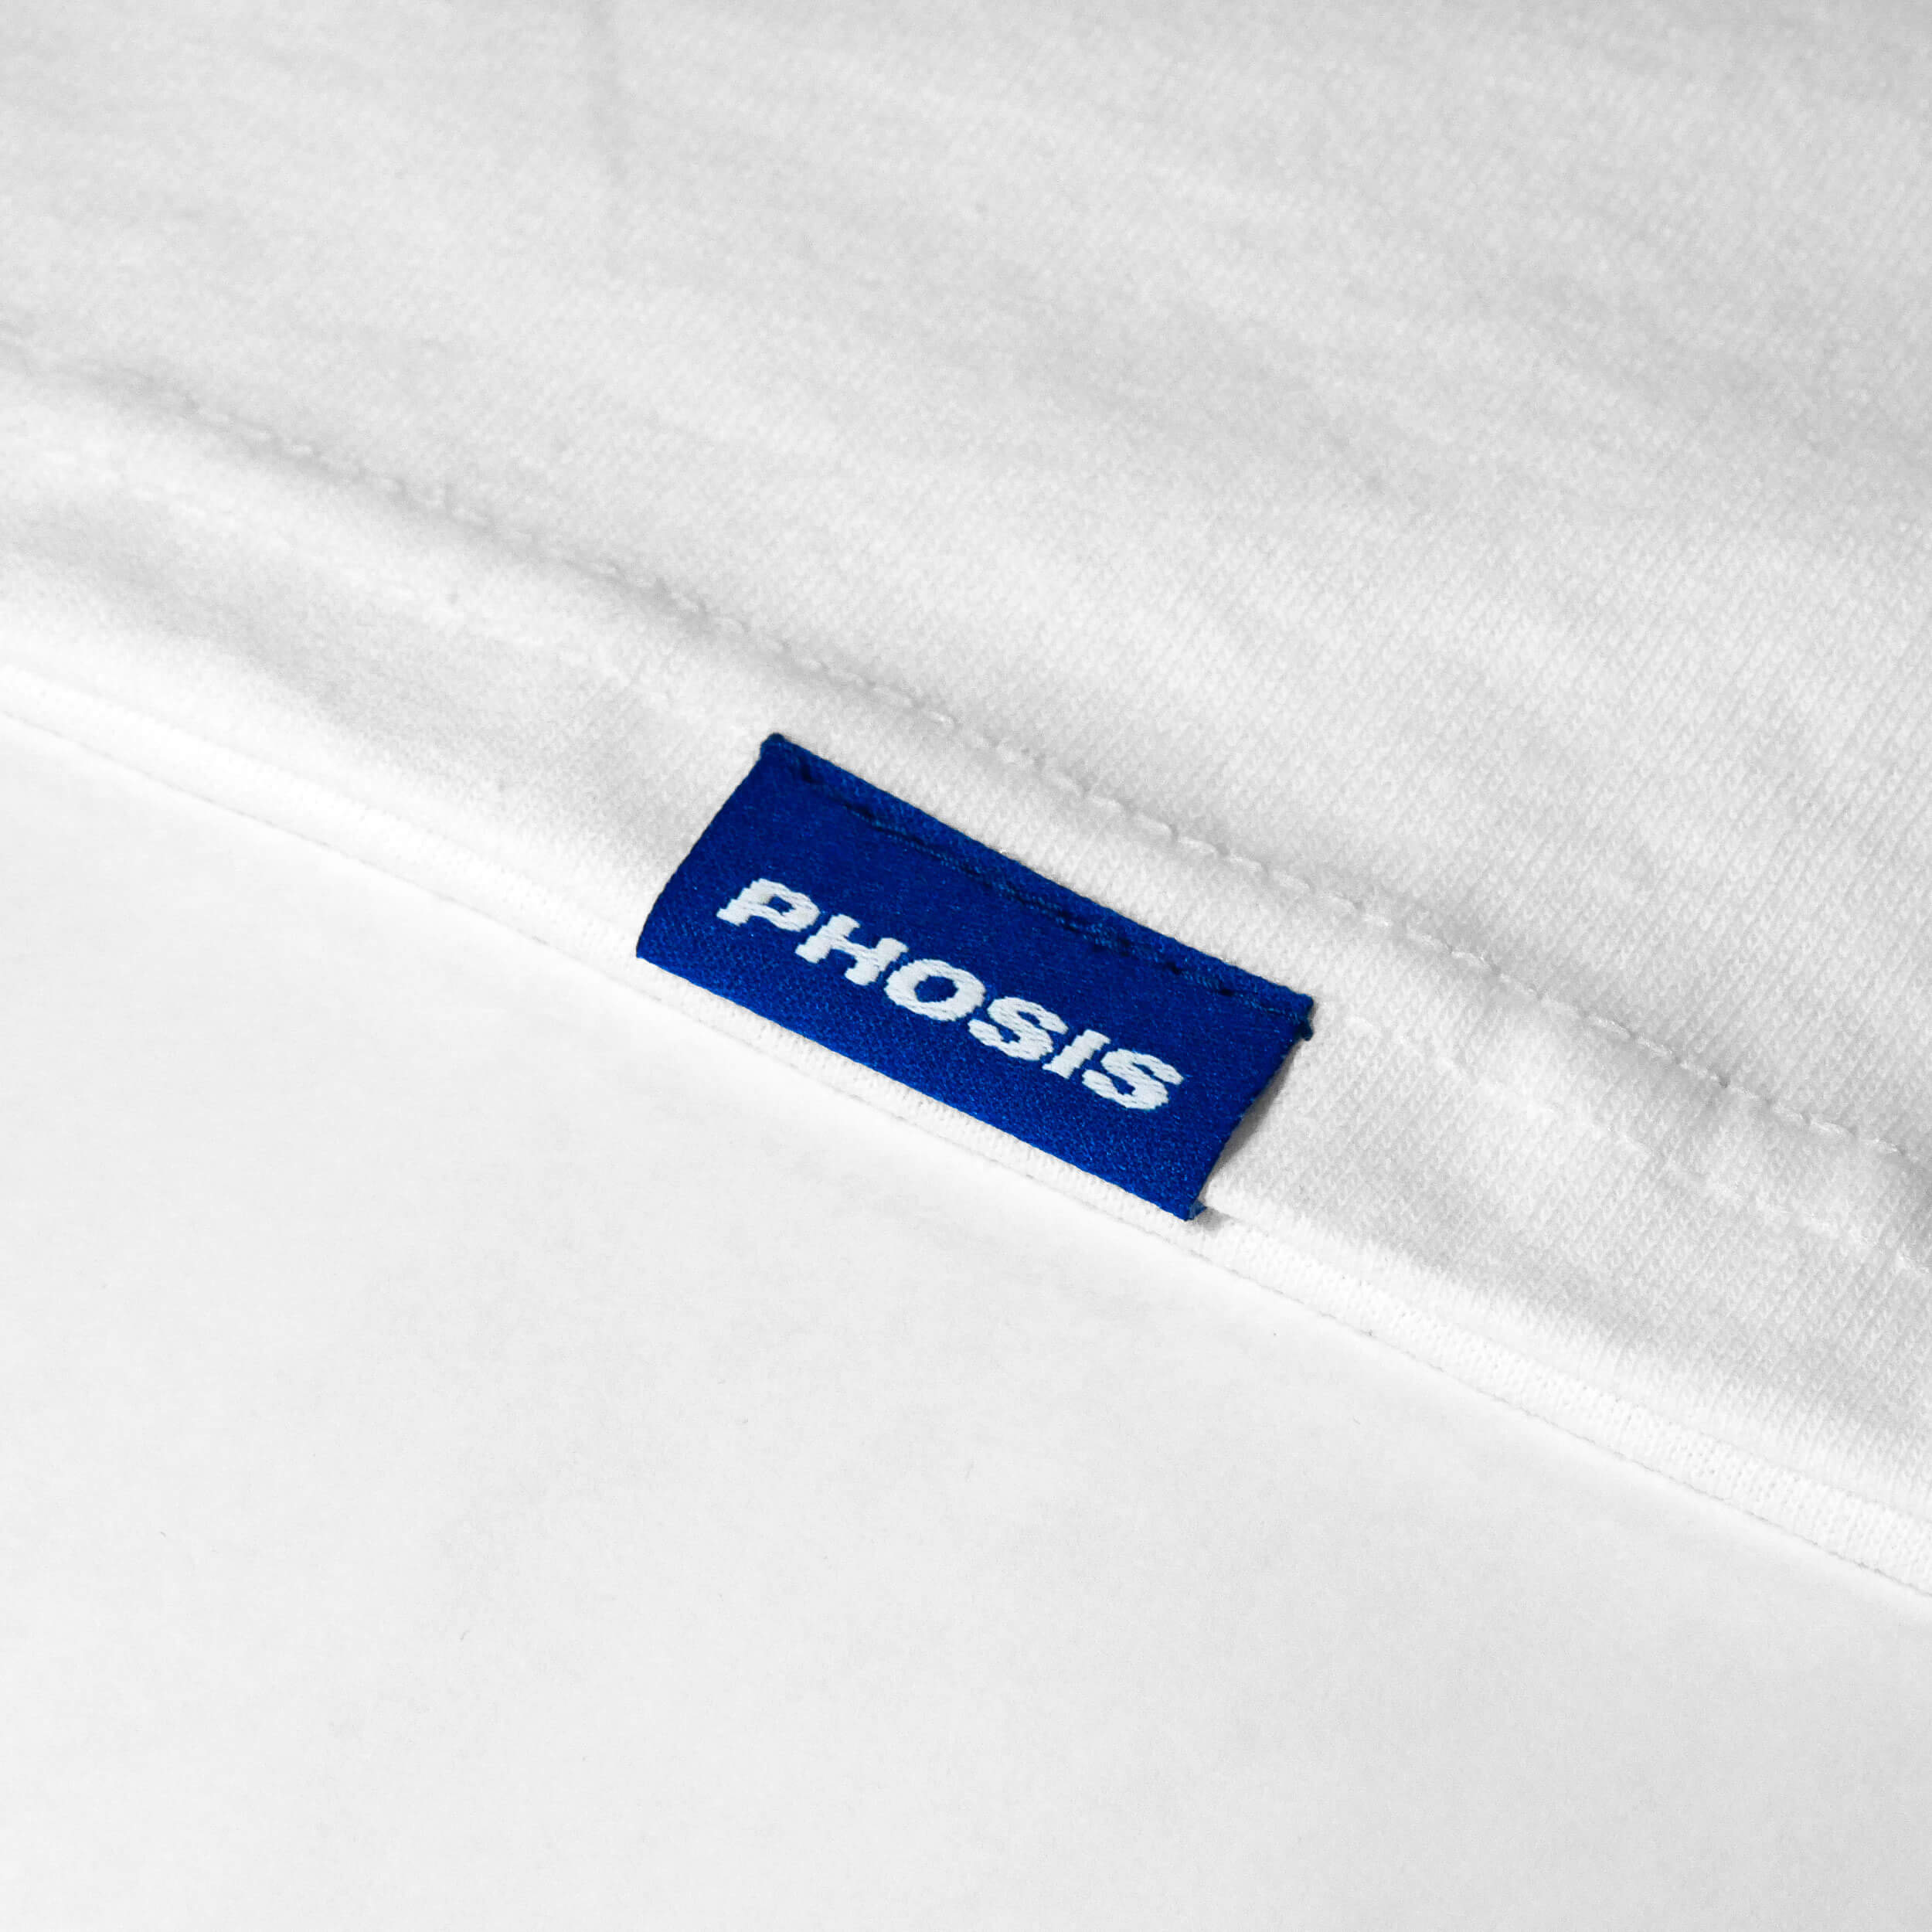 Close up view of the blue woven label in the WEEPING GHOST white t-shirt from PHOSIS Clothing